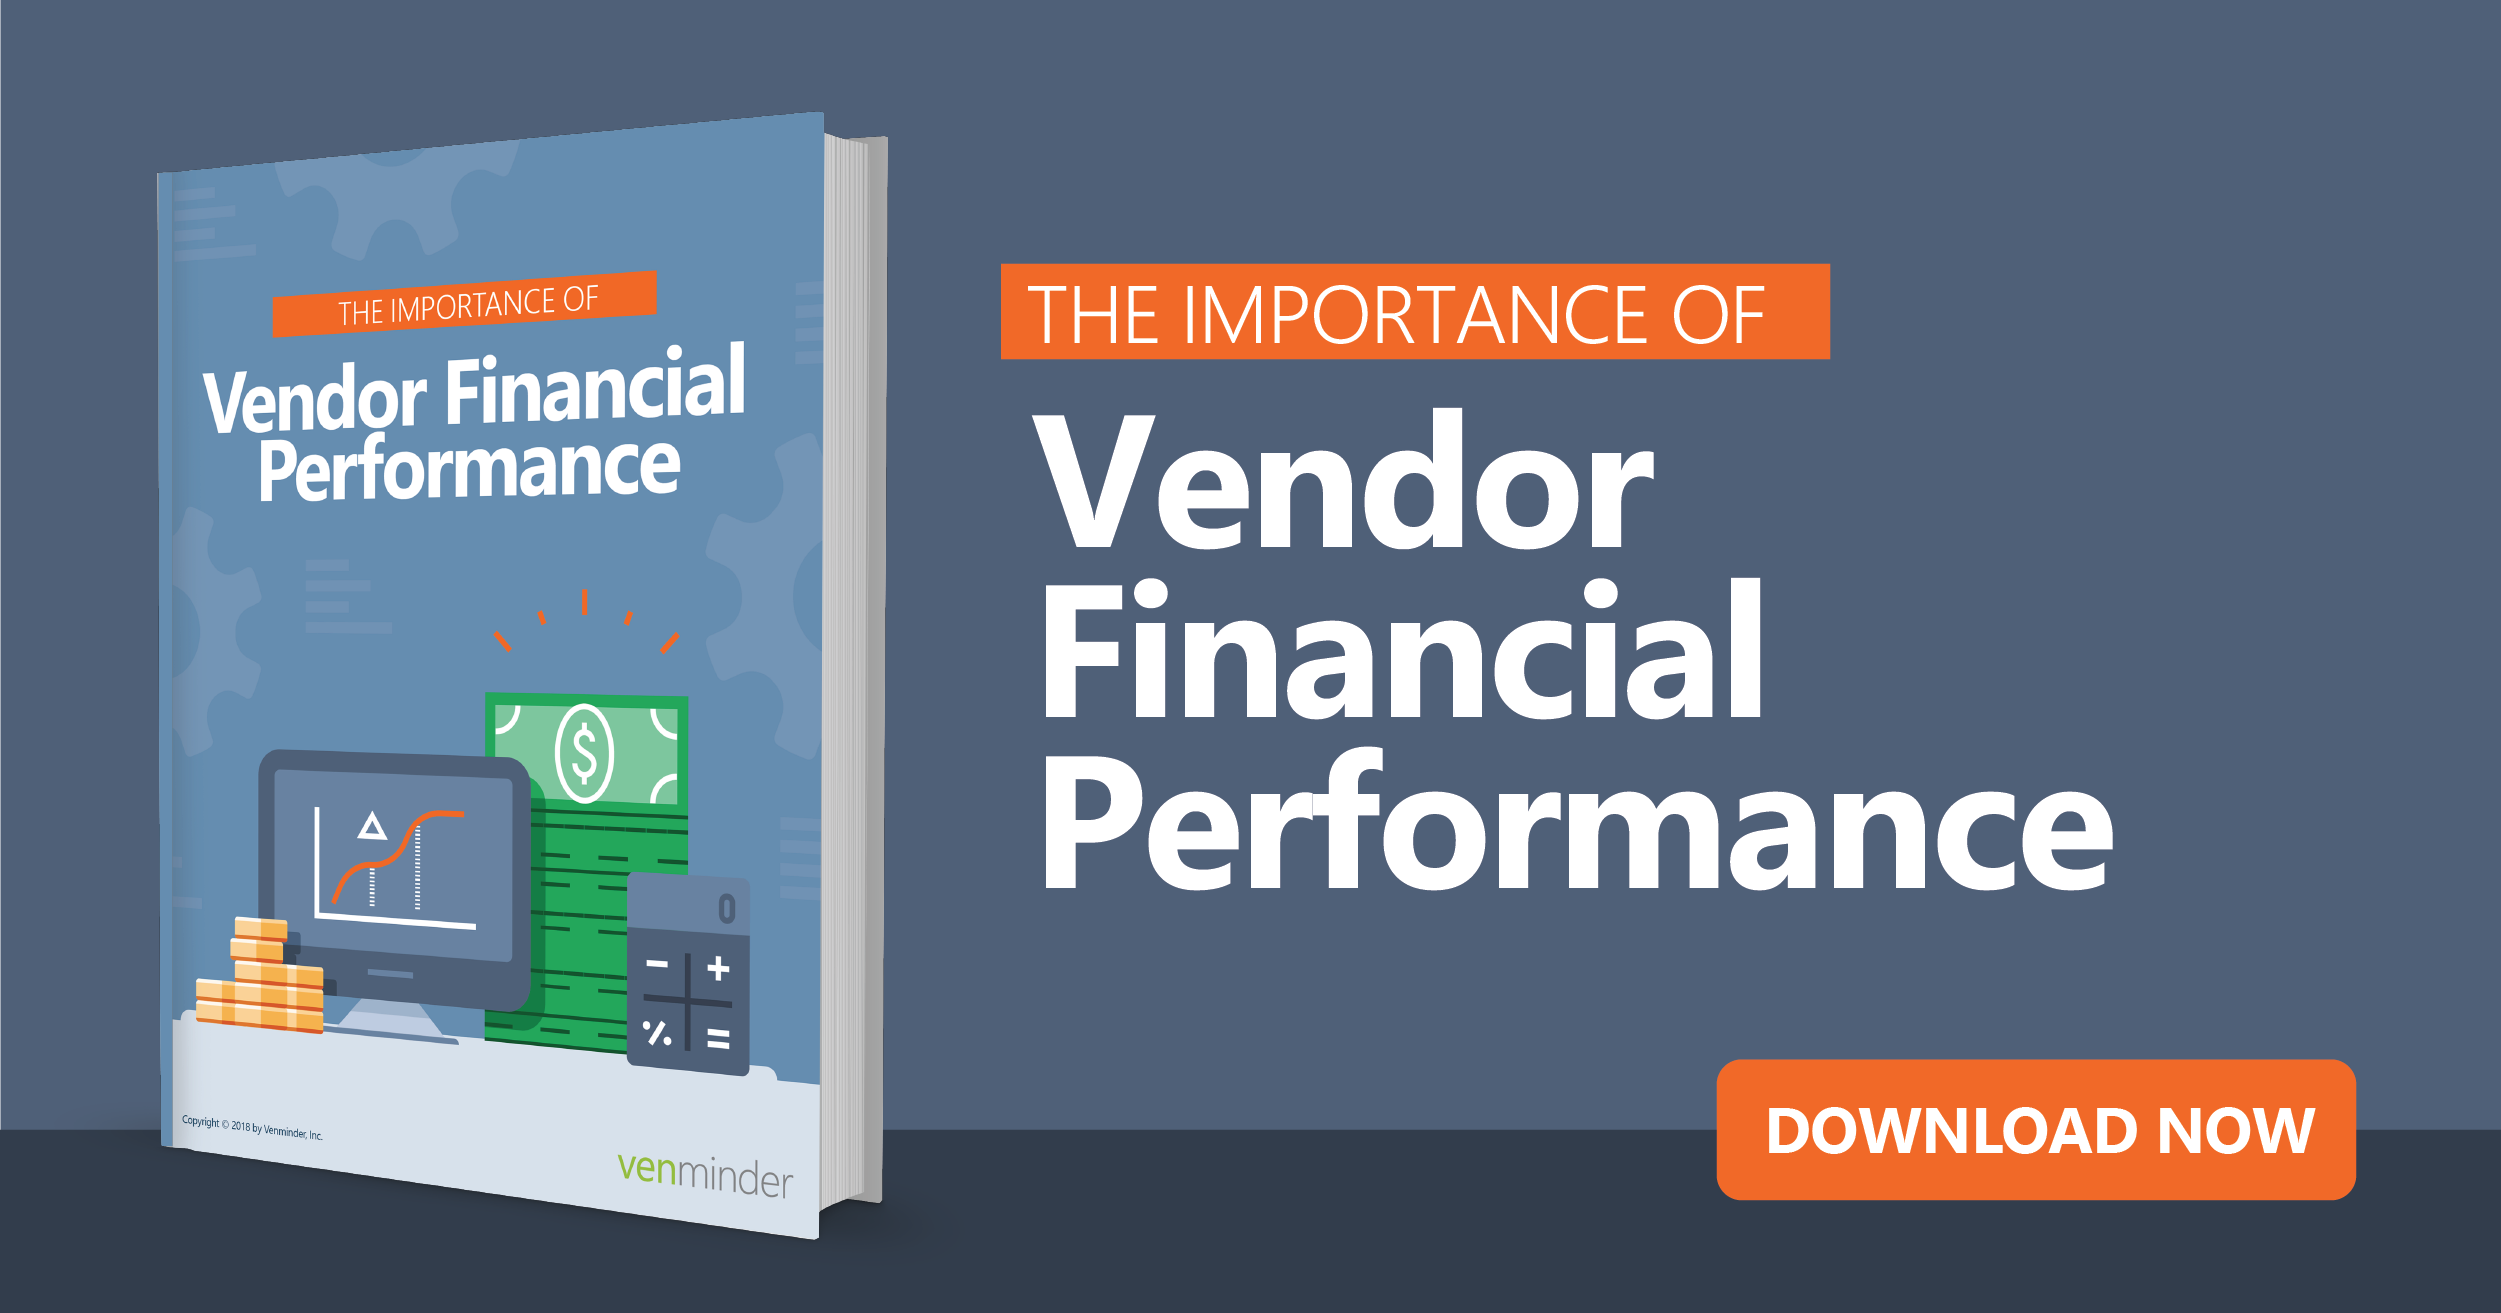 vendor-financial-performance-importance